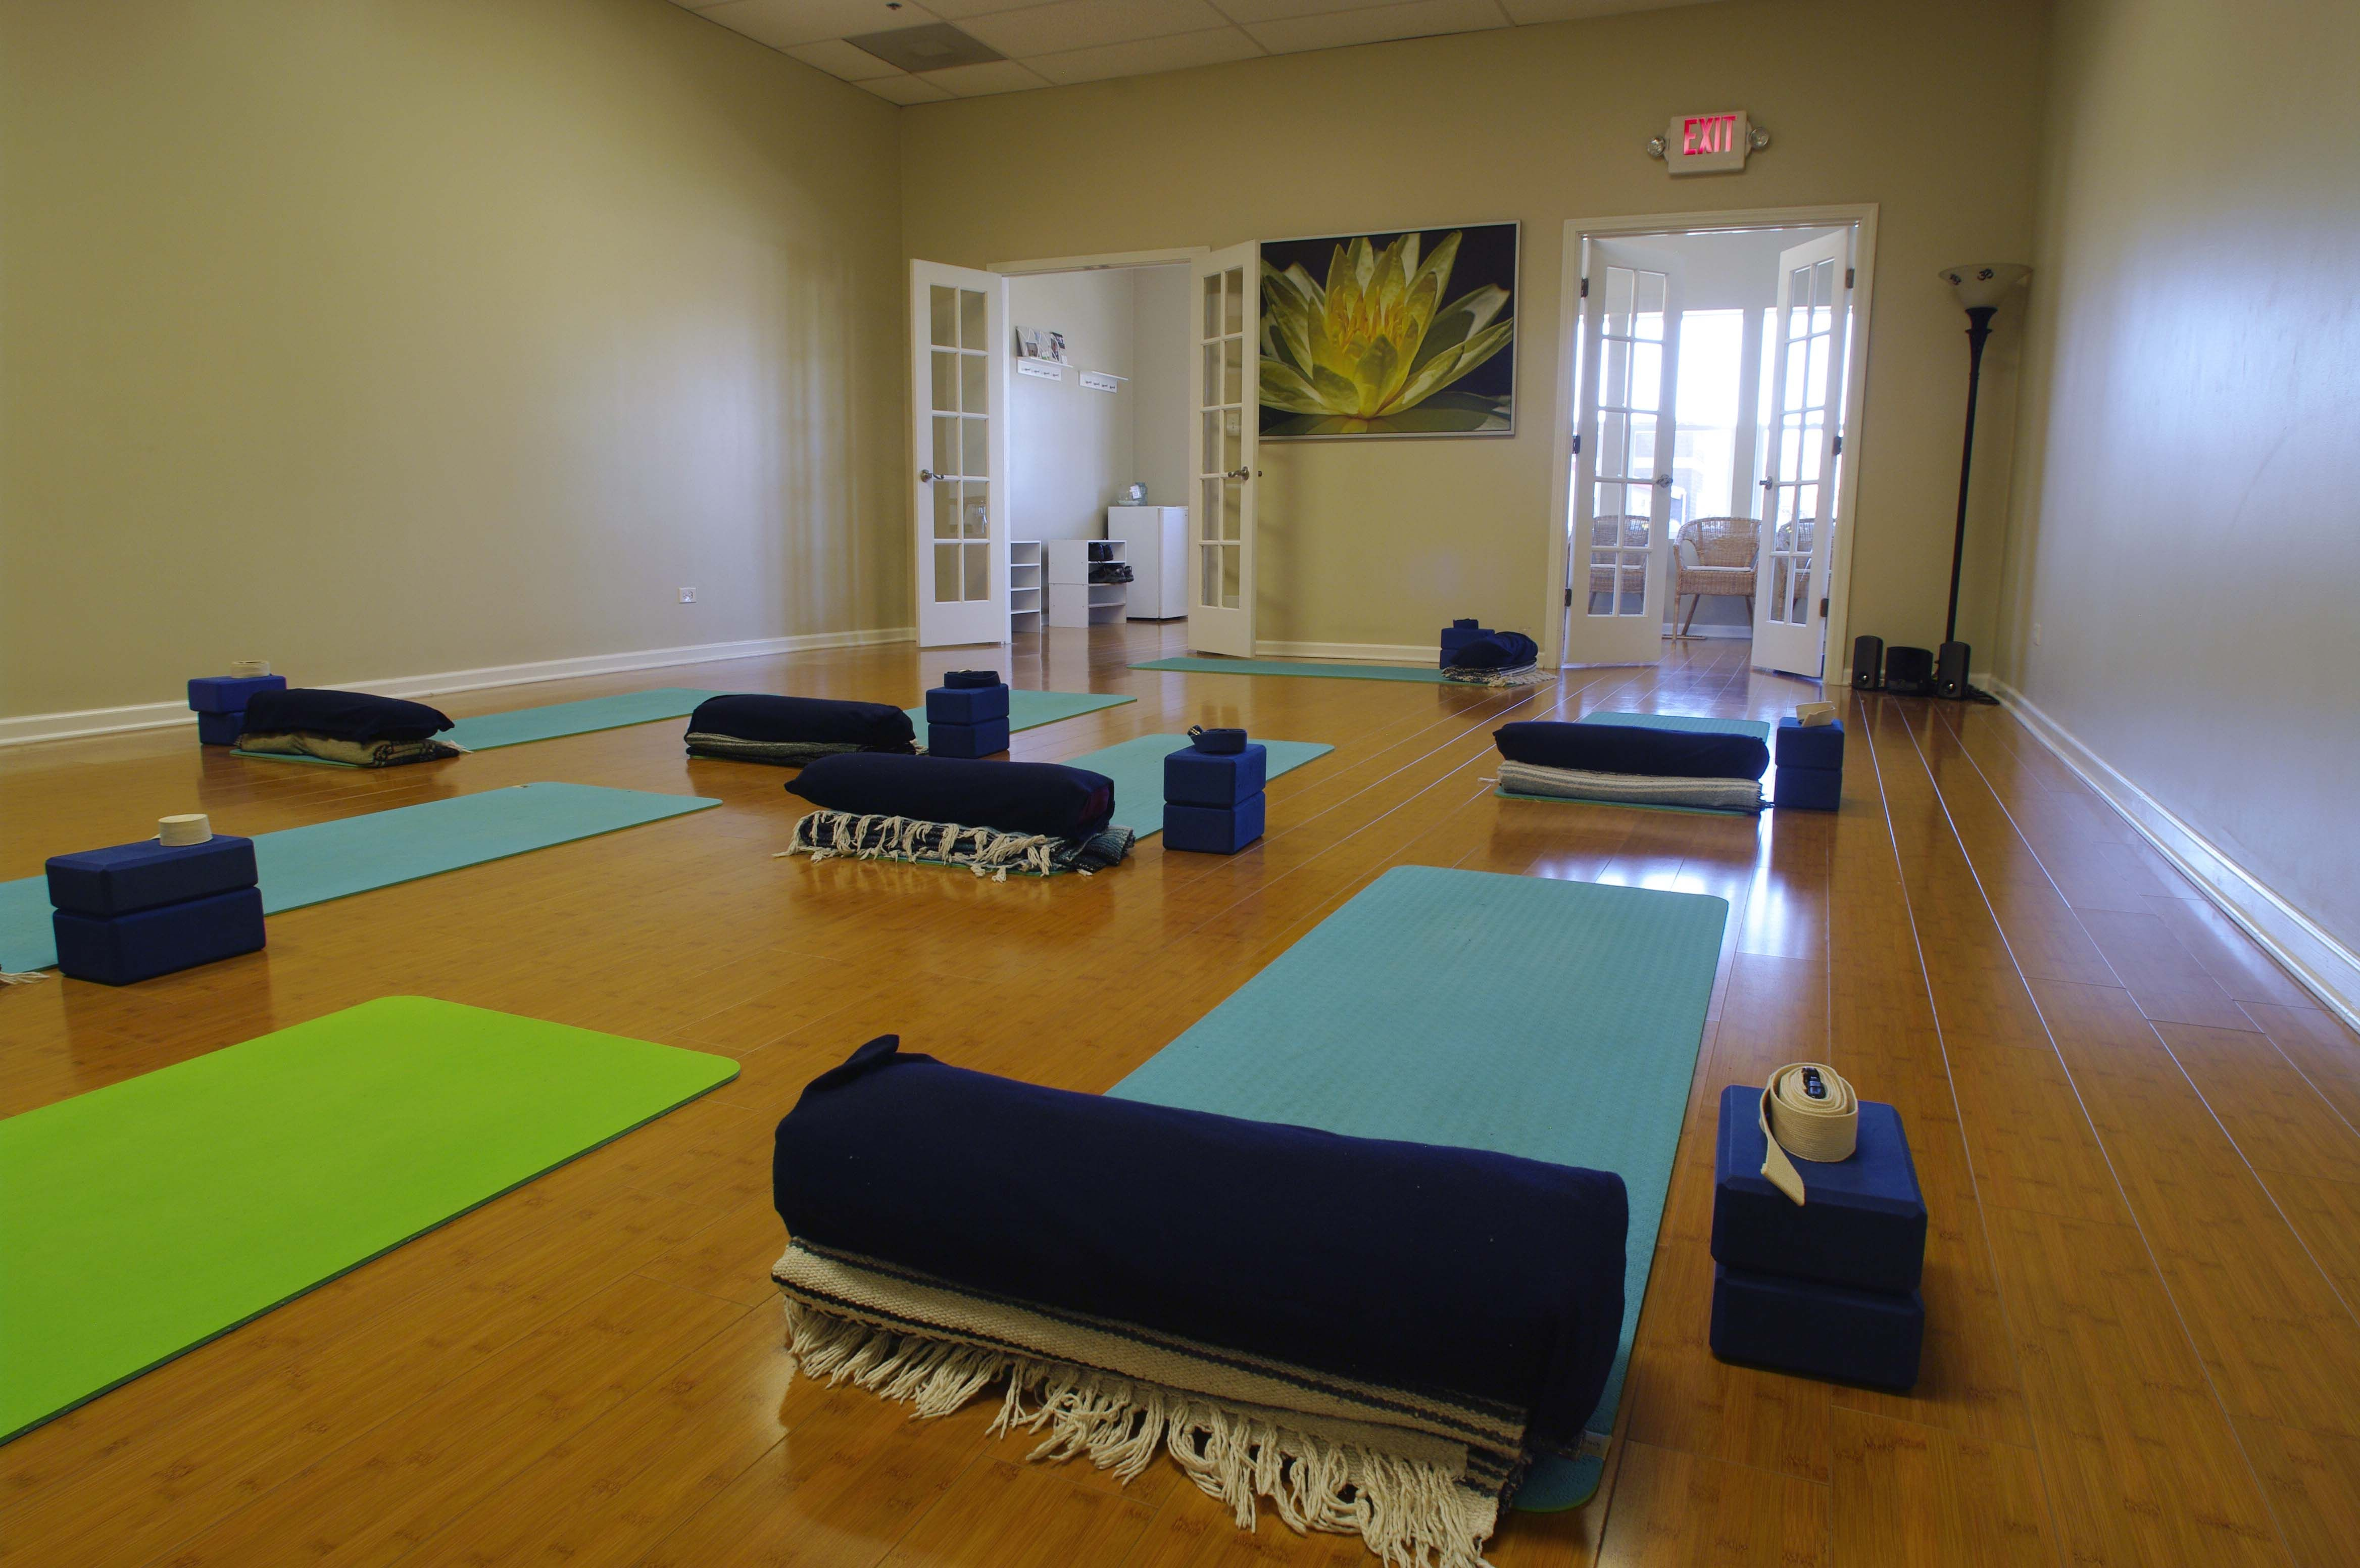 Reflections Yoga Center Yoga Studio Classes In Tinley Park Yoga In Oak Forest Yoga In Orland Park Yoga Center Yoga Studio Yoga